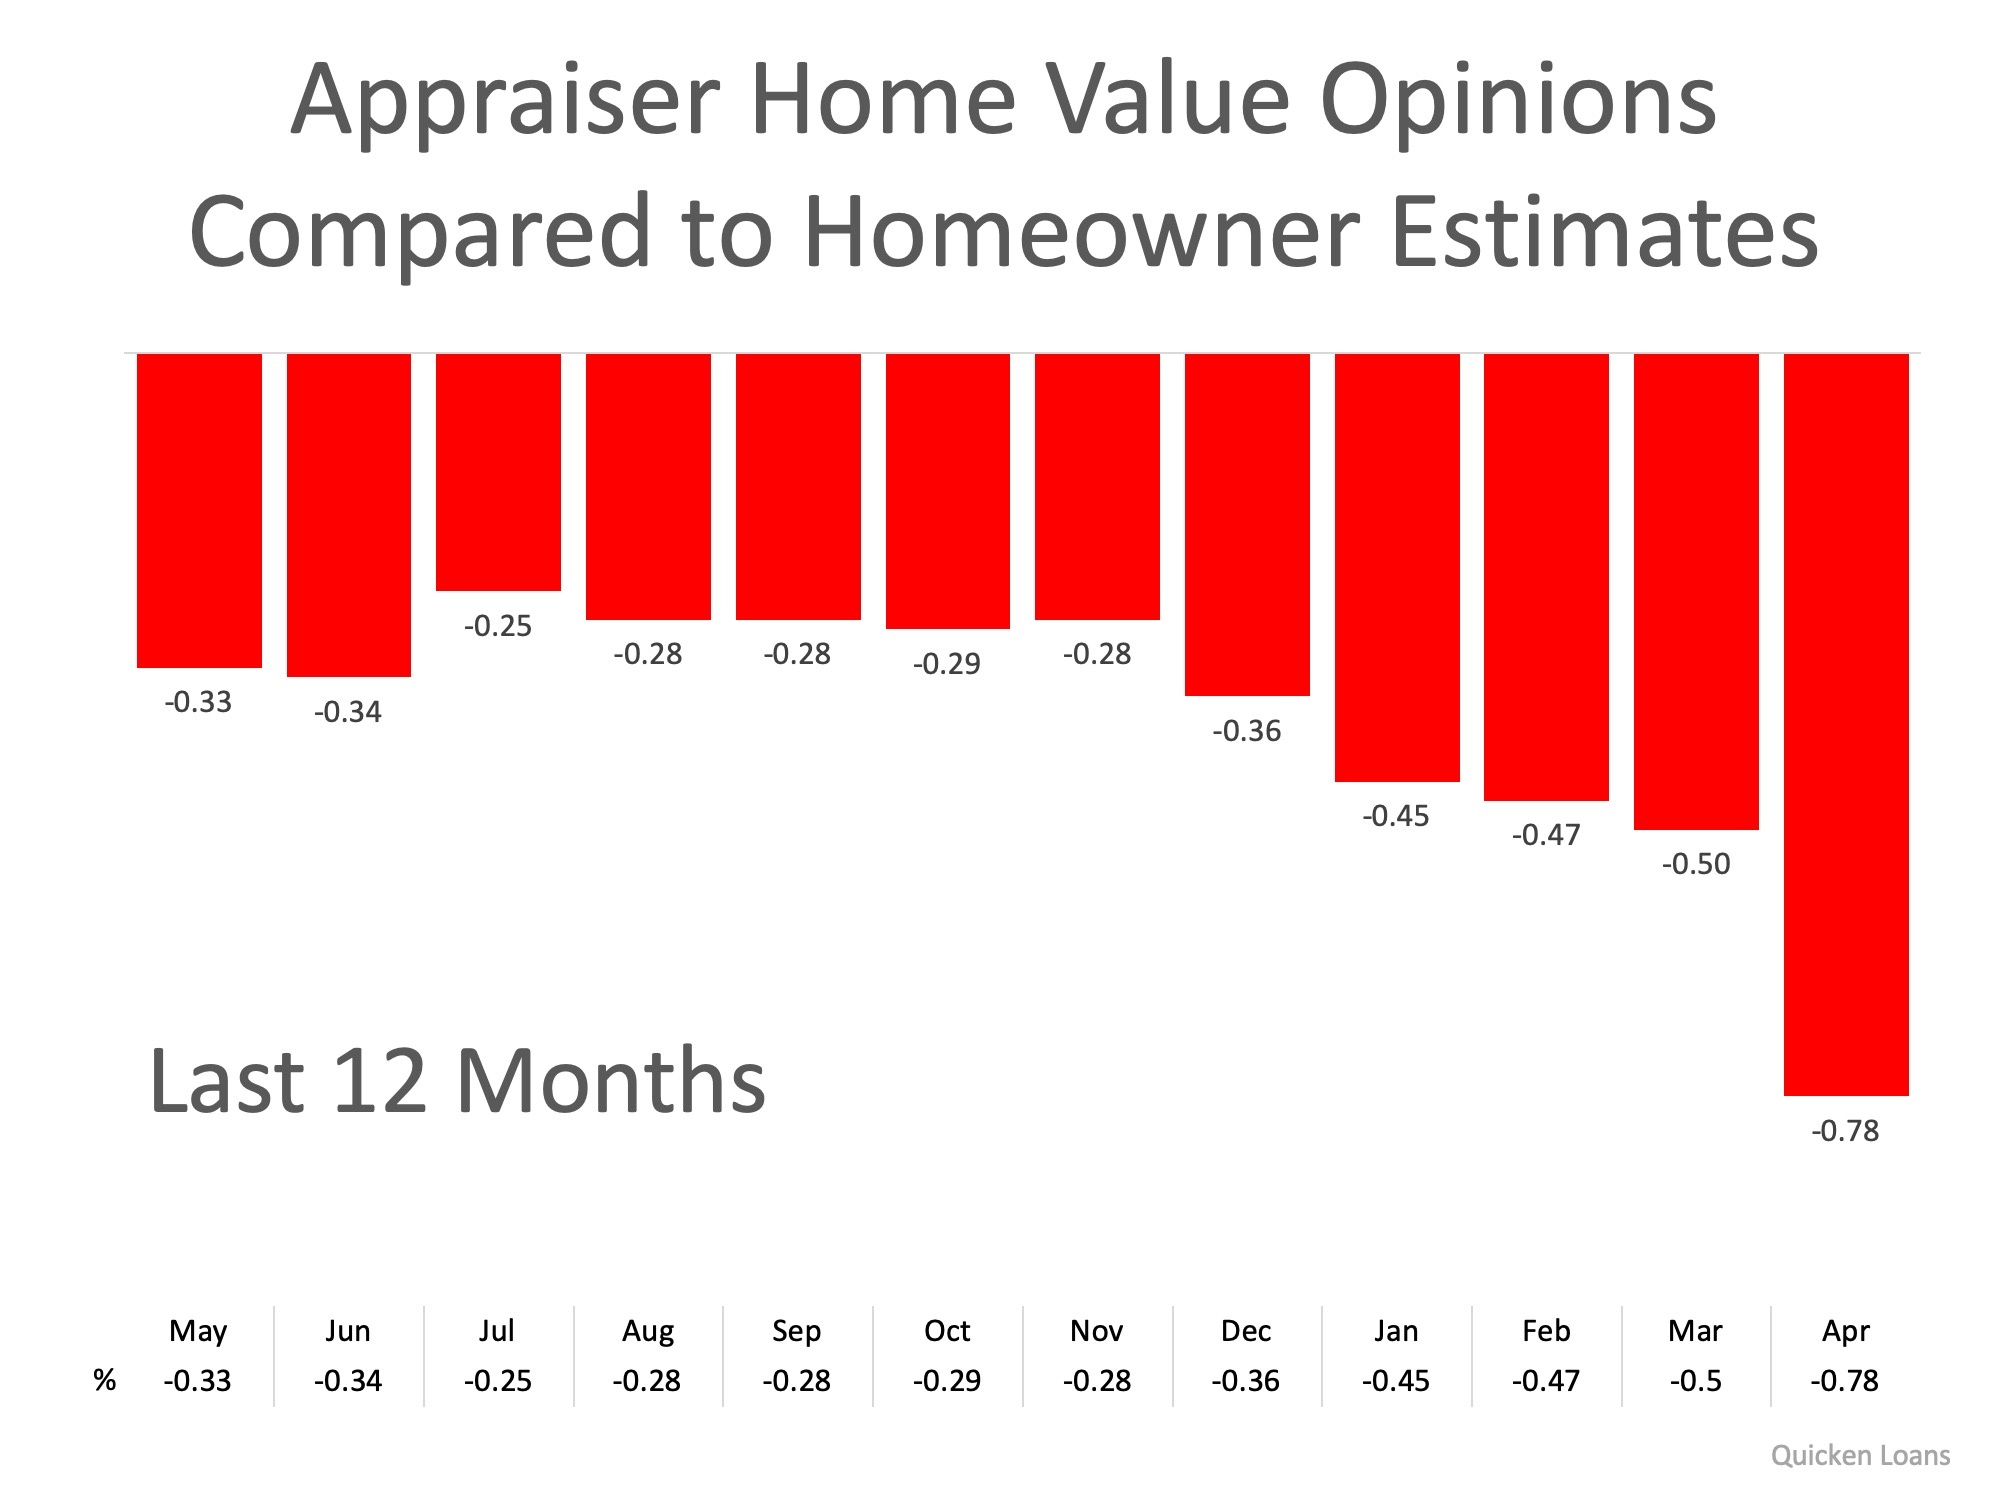 home value opinions